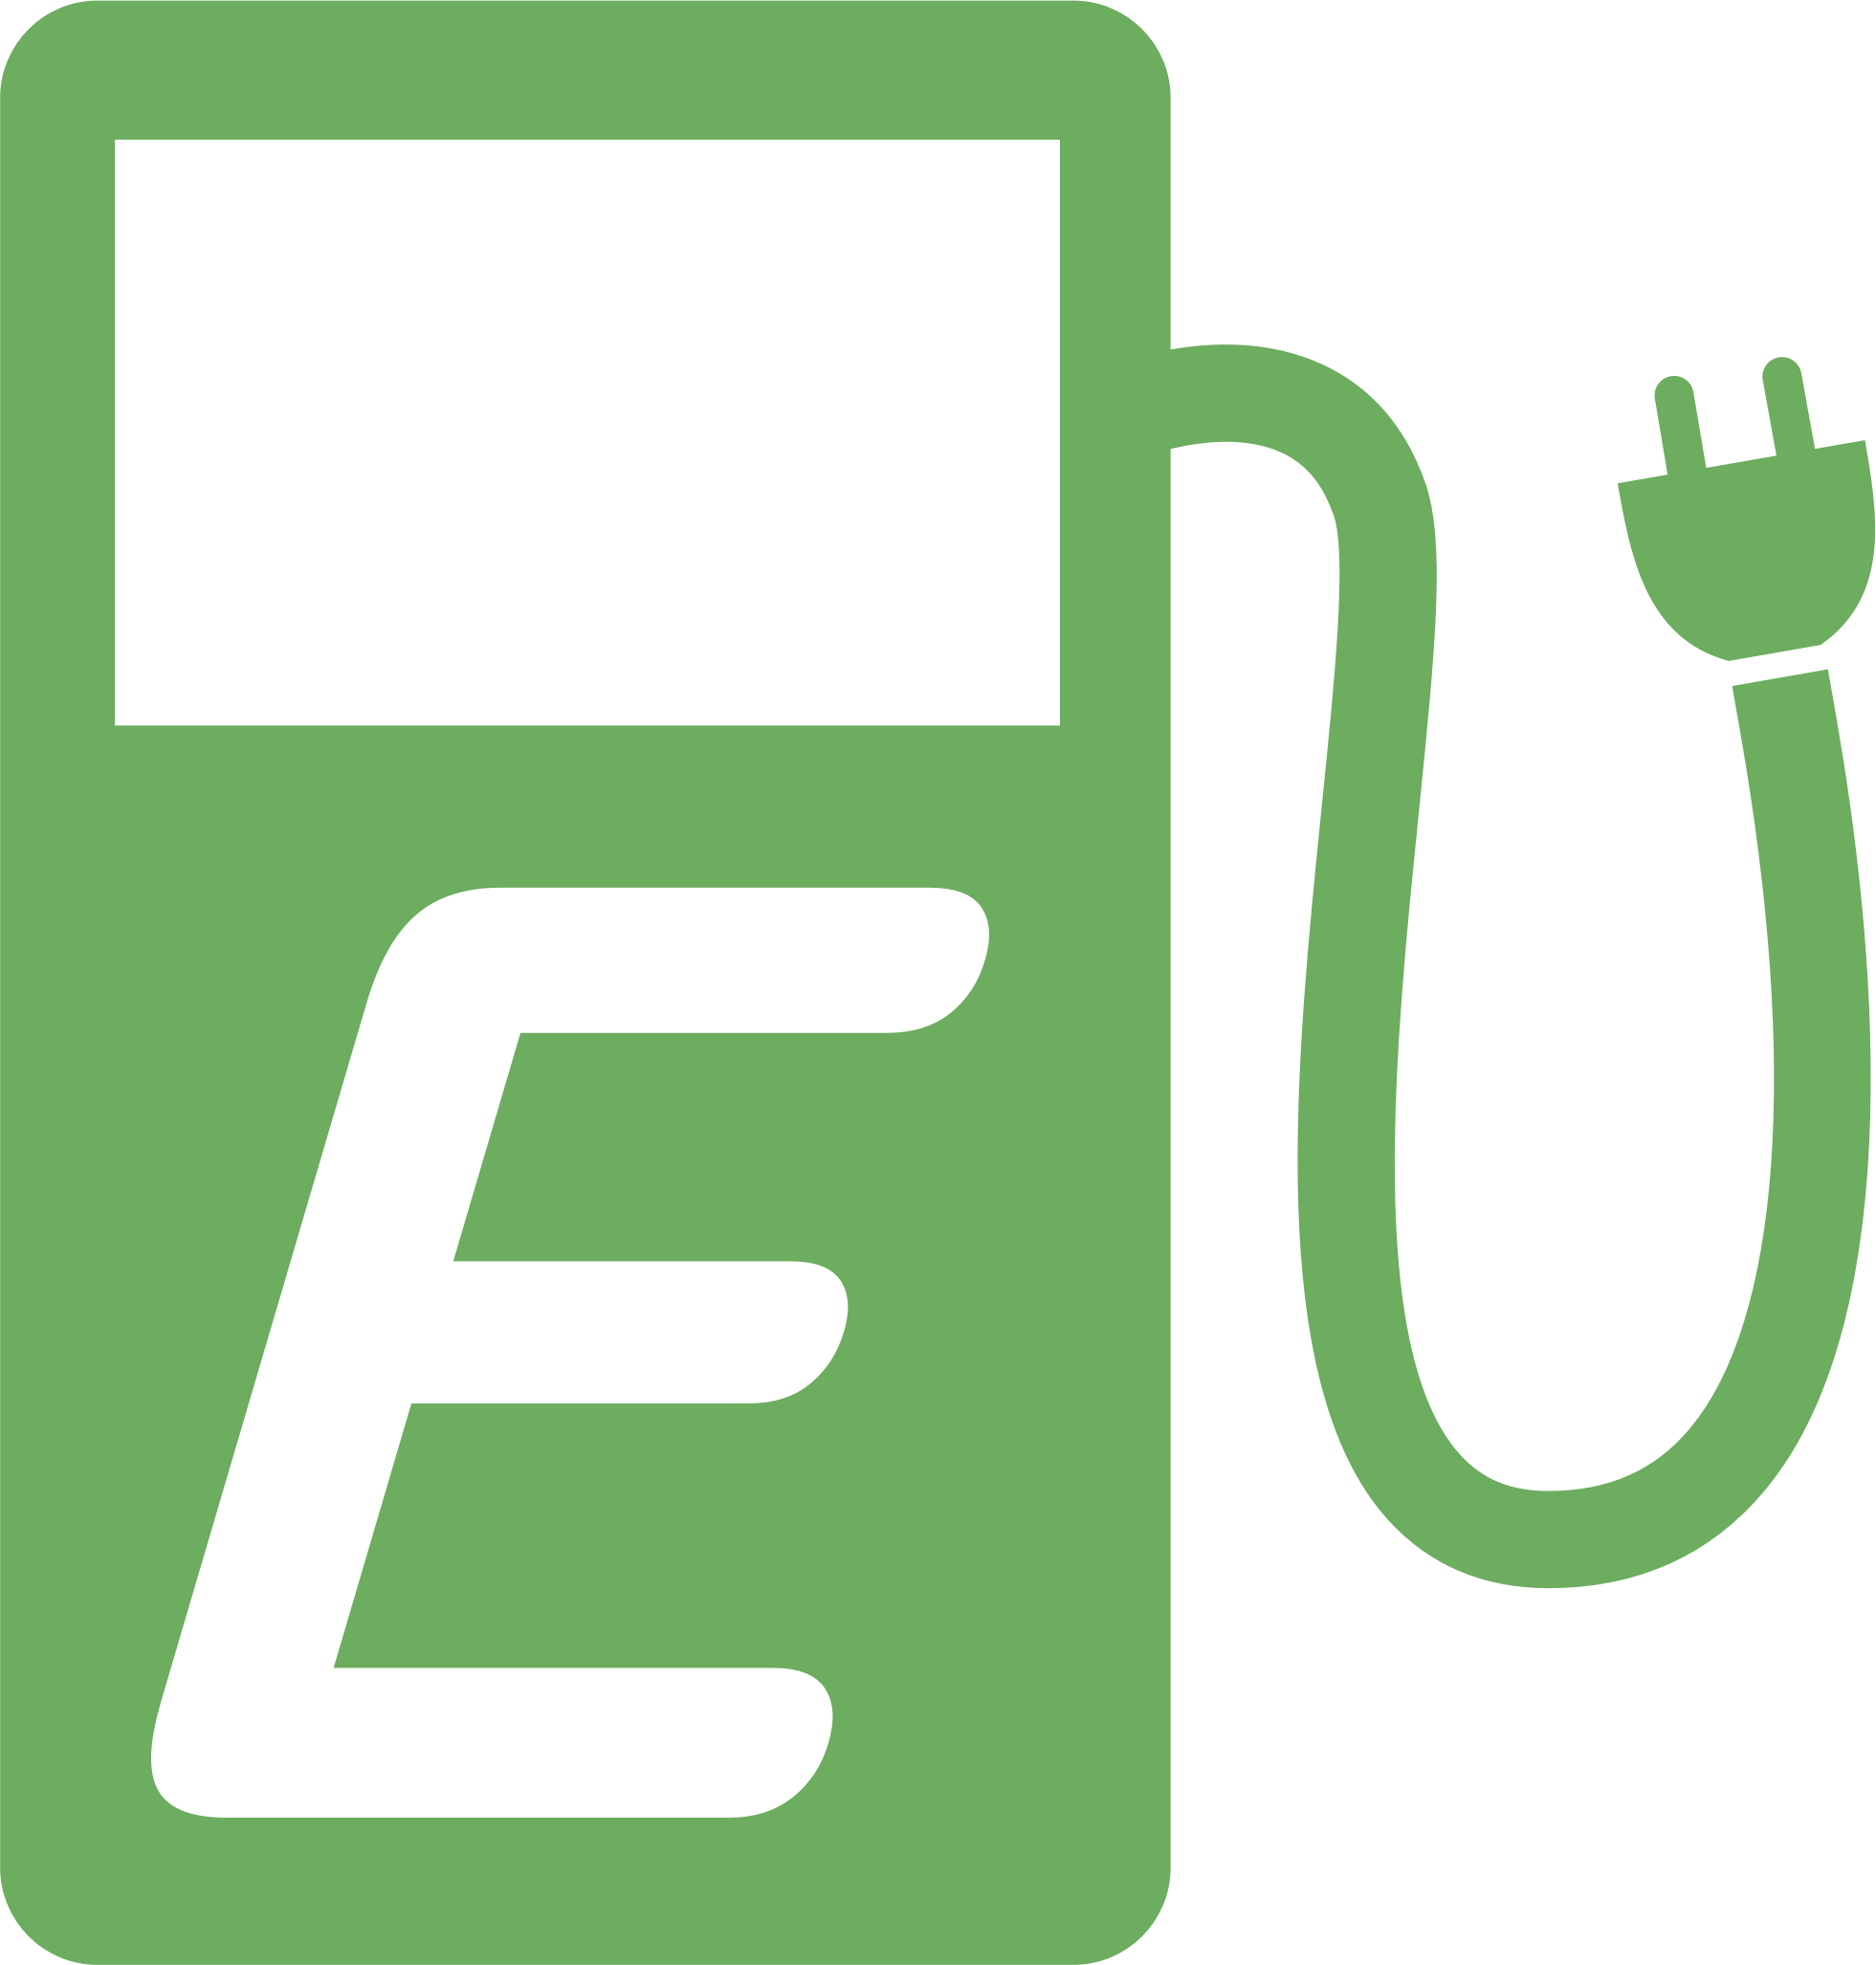 Charging station big image. E clipart green